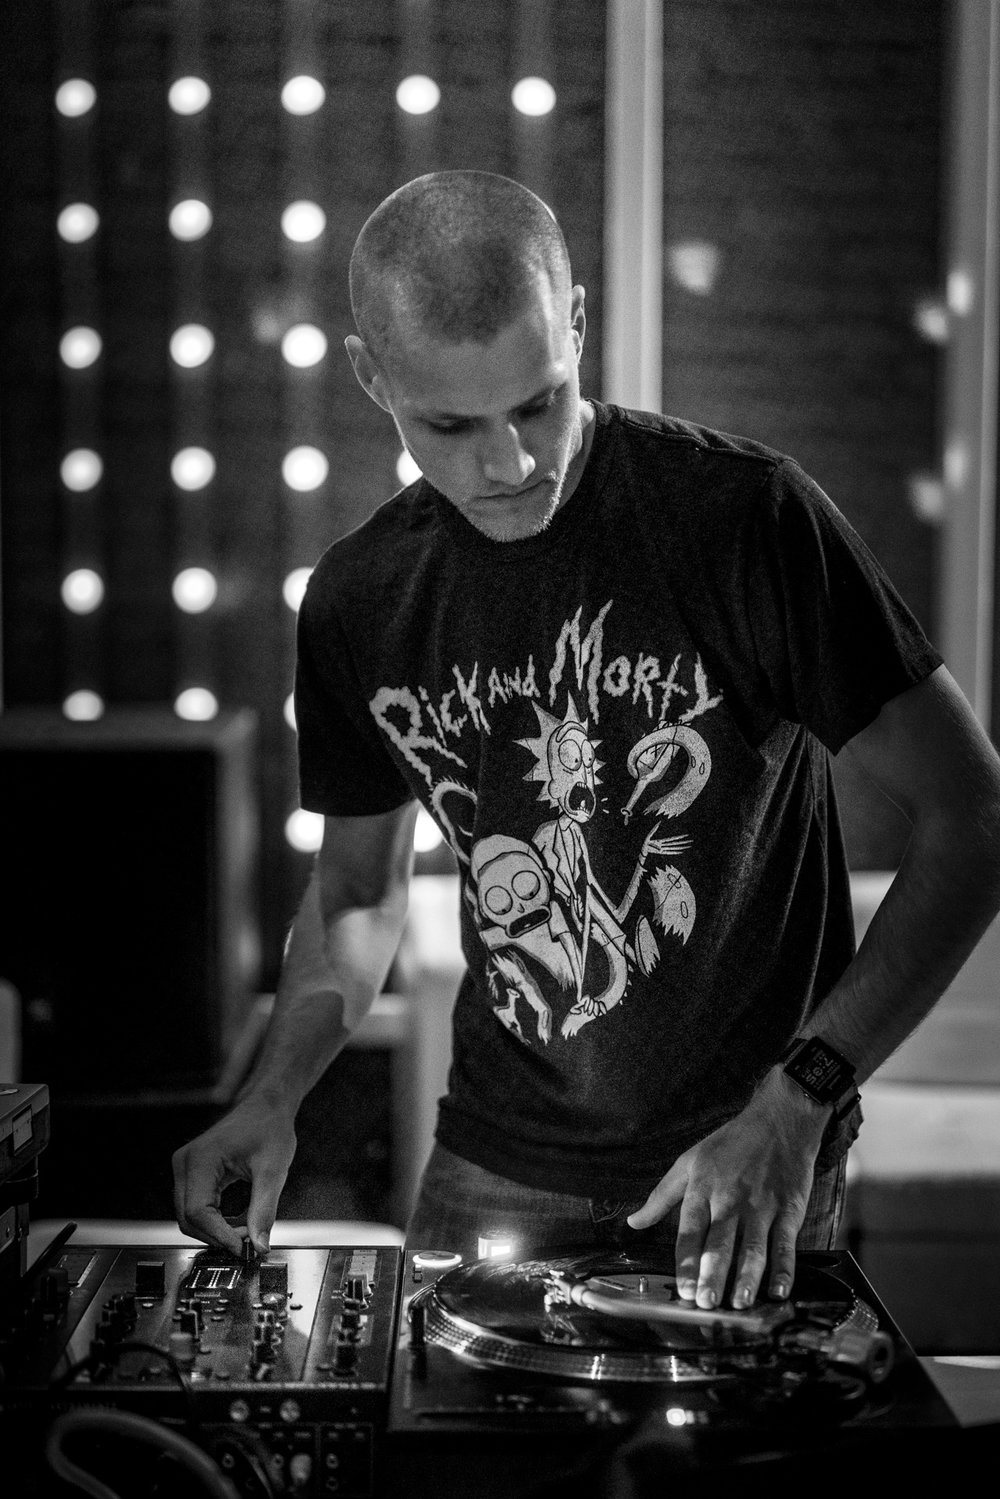 2016_11_03_Skratch Lounge_0012_Export.jpg